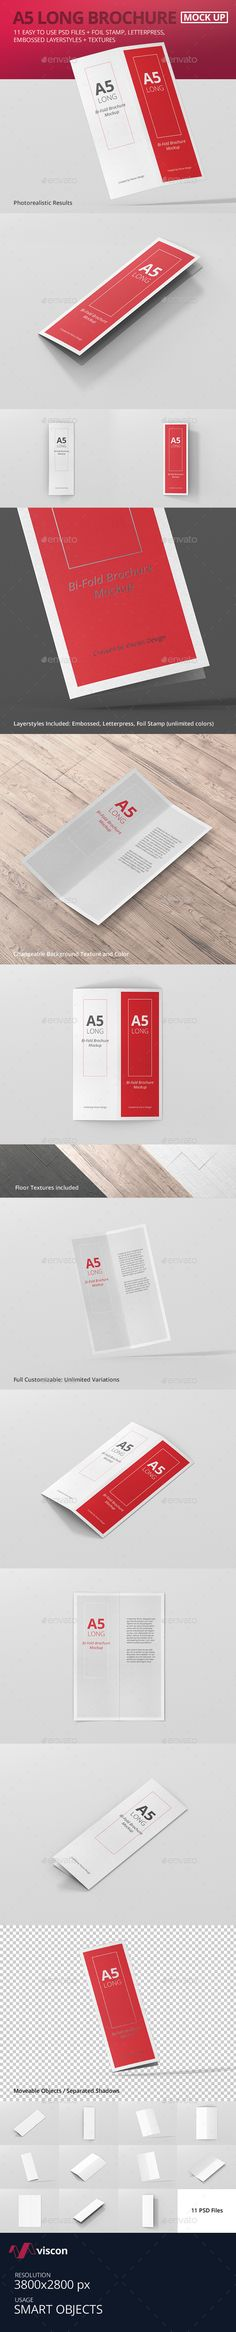 Square Accordion Fold Brochure MockUp  Accordion Fold Mockup